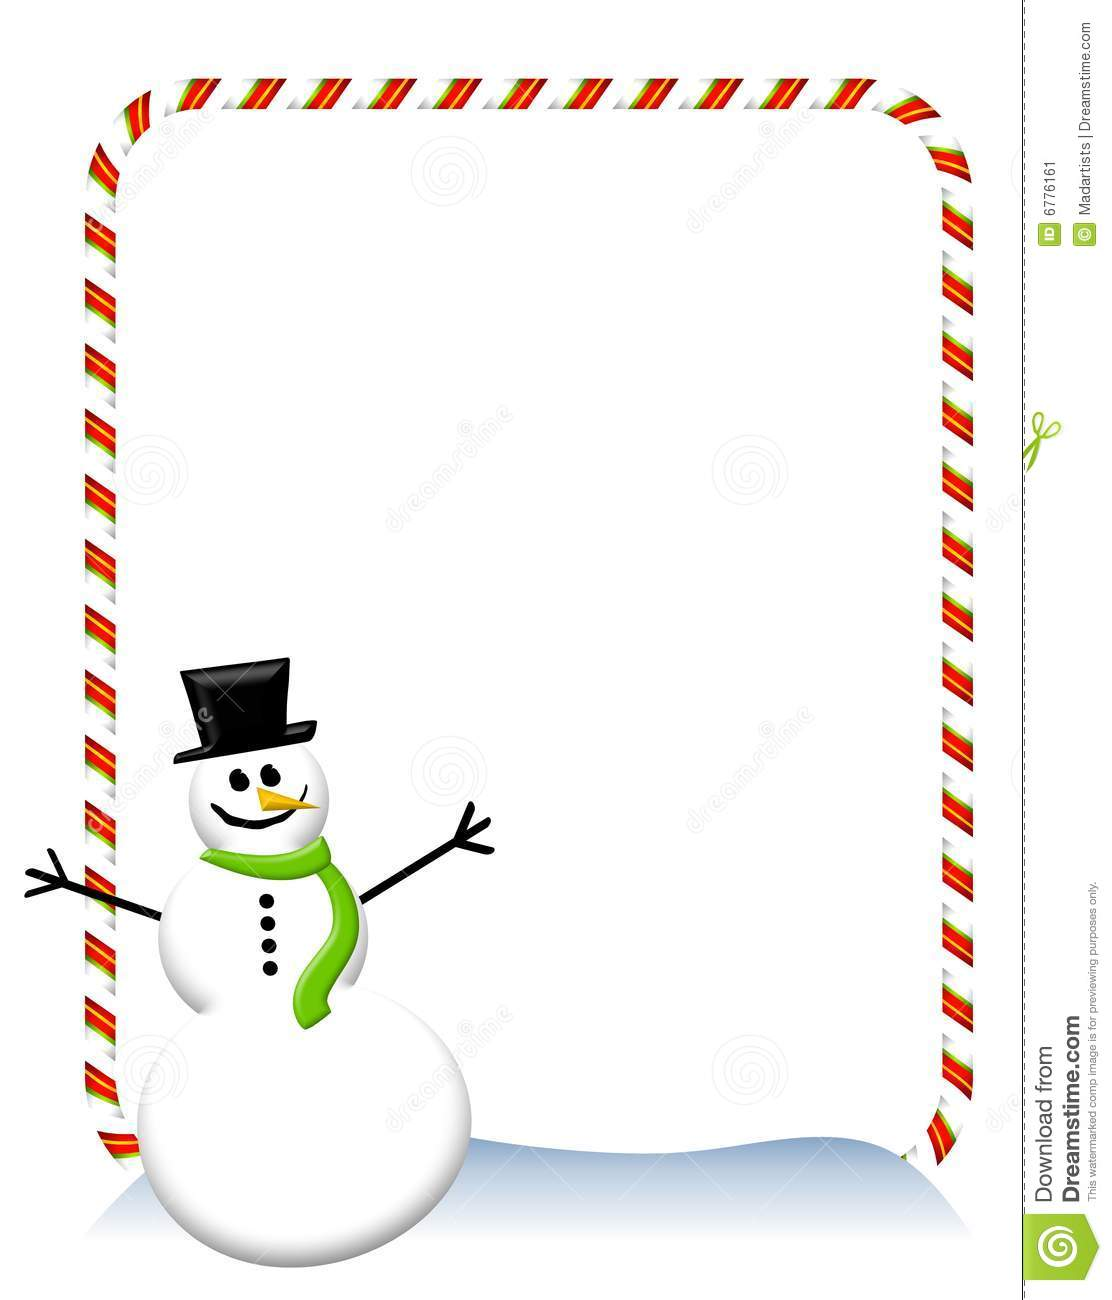 Candy Cane Snowman Border 2 Stock Image - Image: 6776161